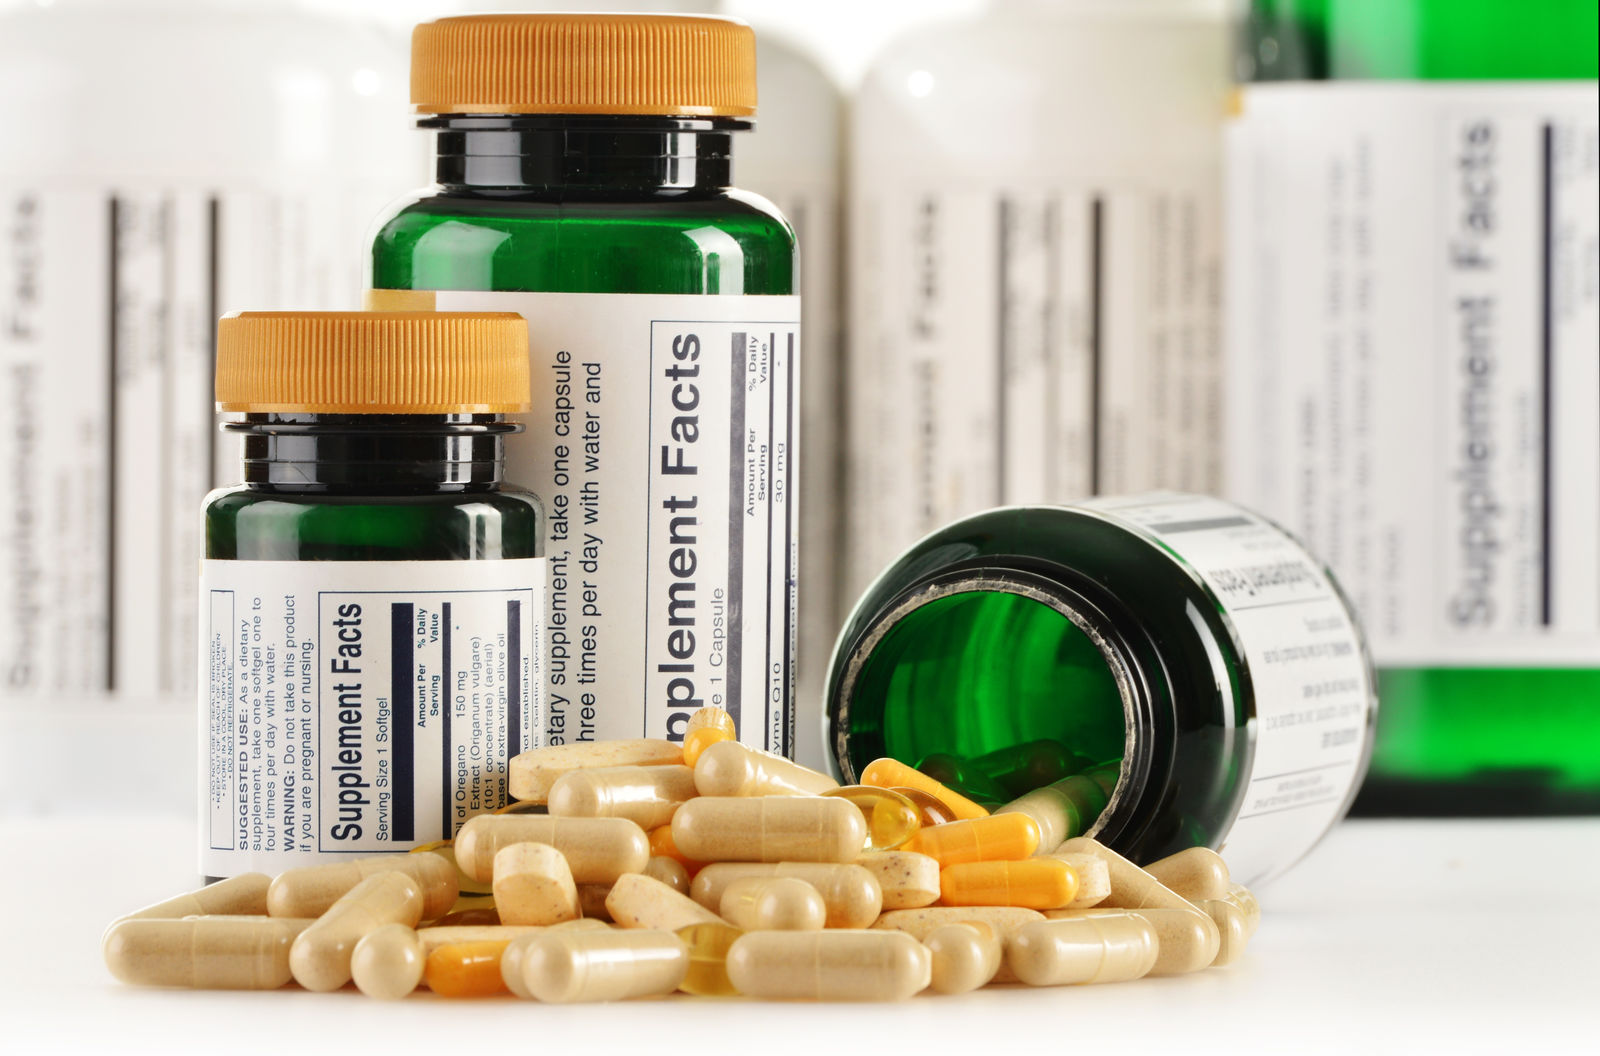 What are the best supplements that mimic steroids?